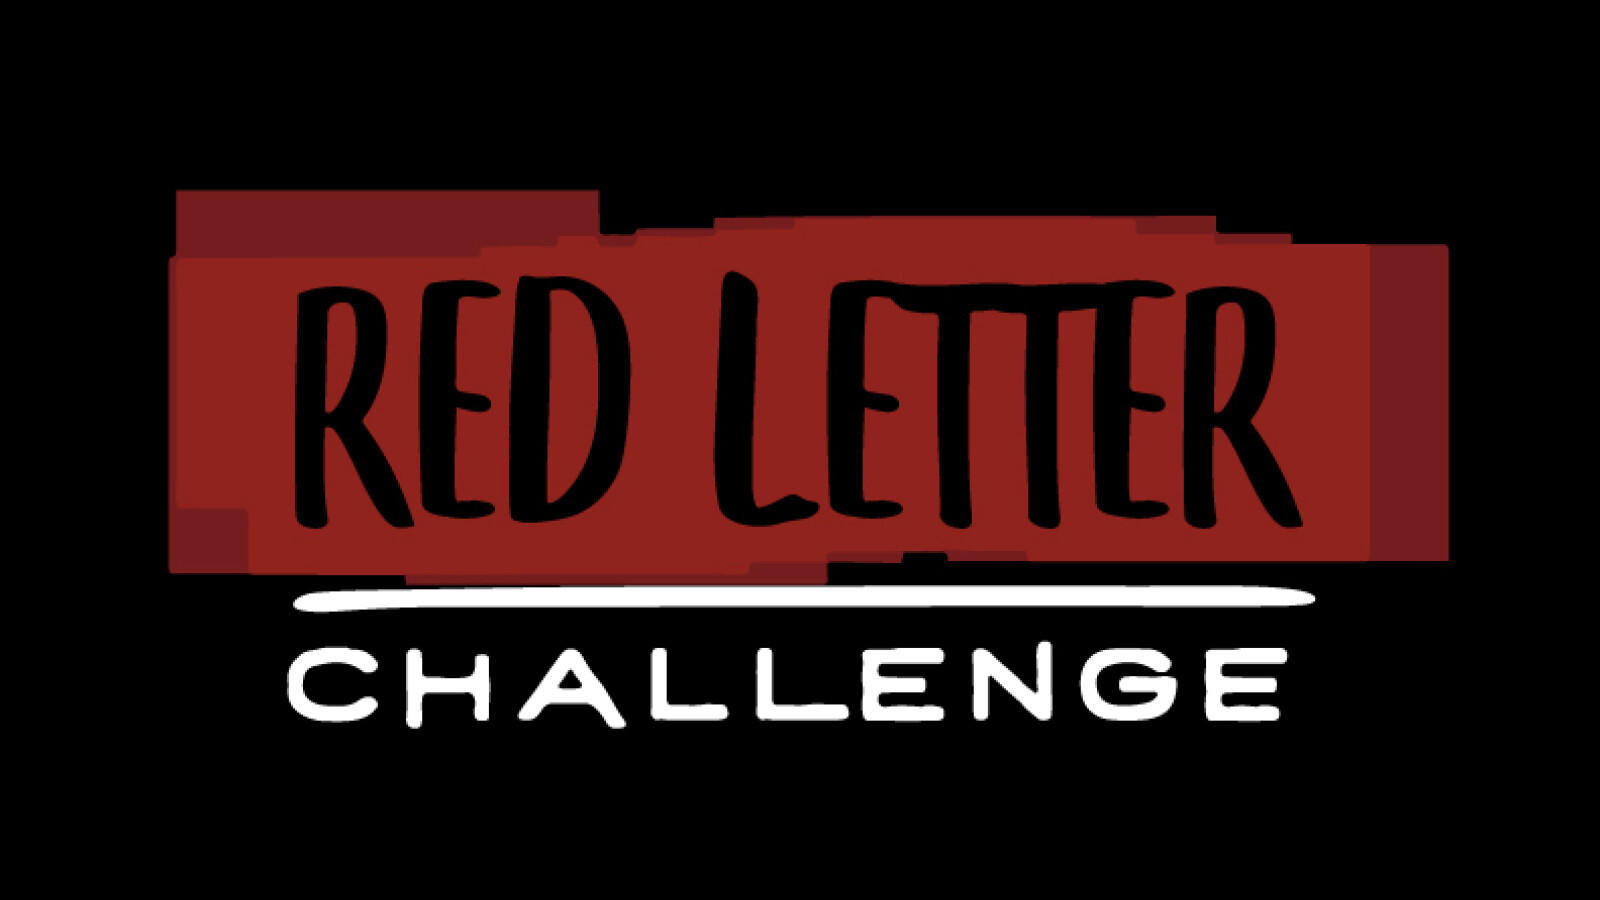 Red Letter Challenge